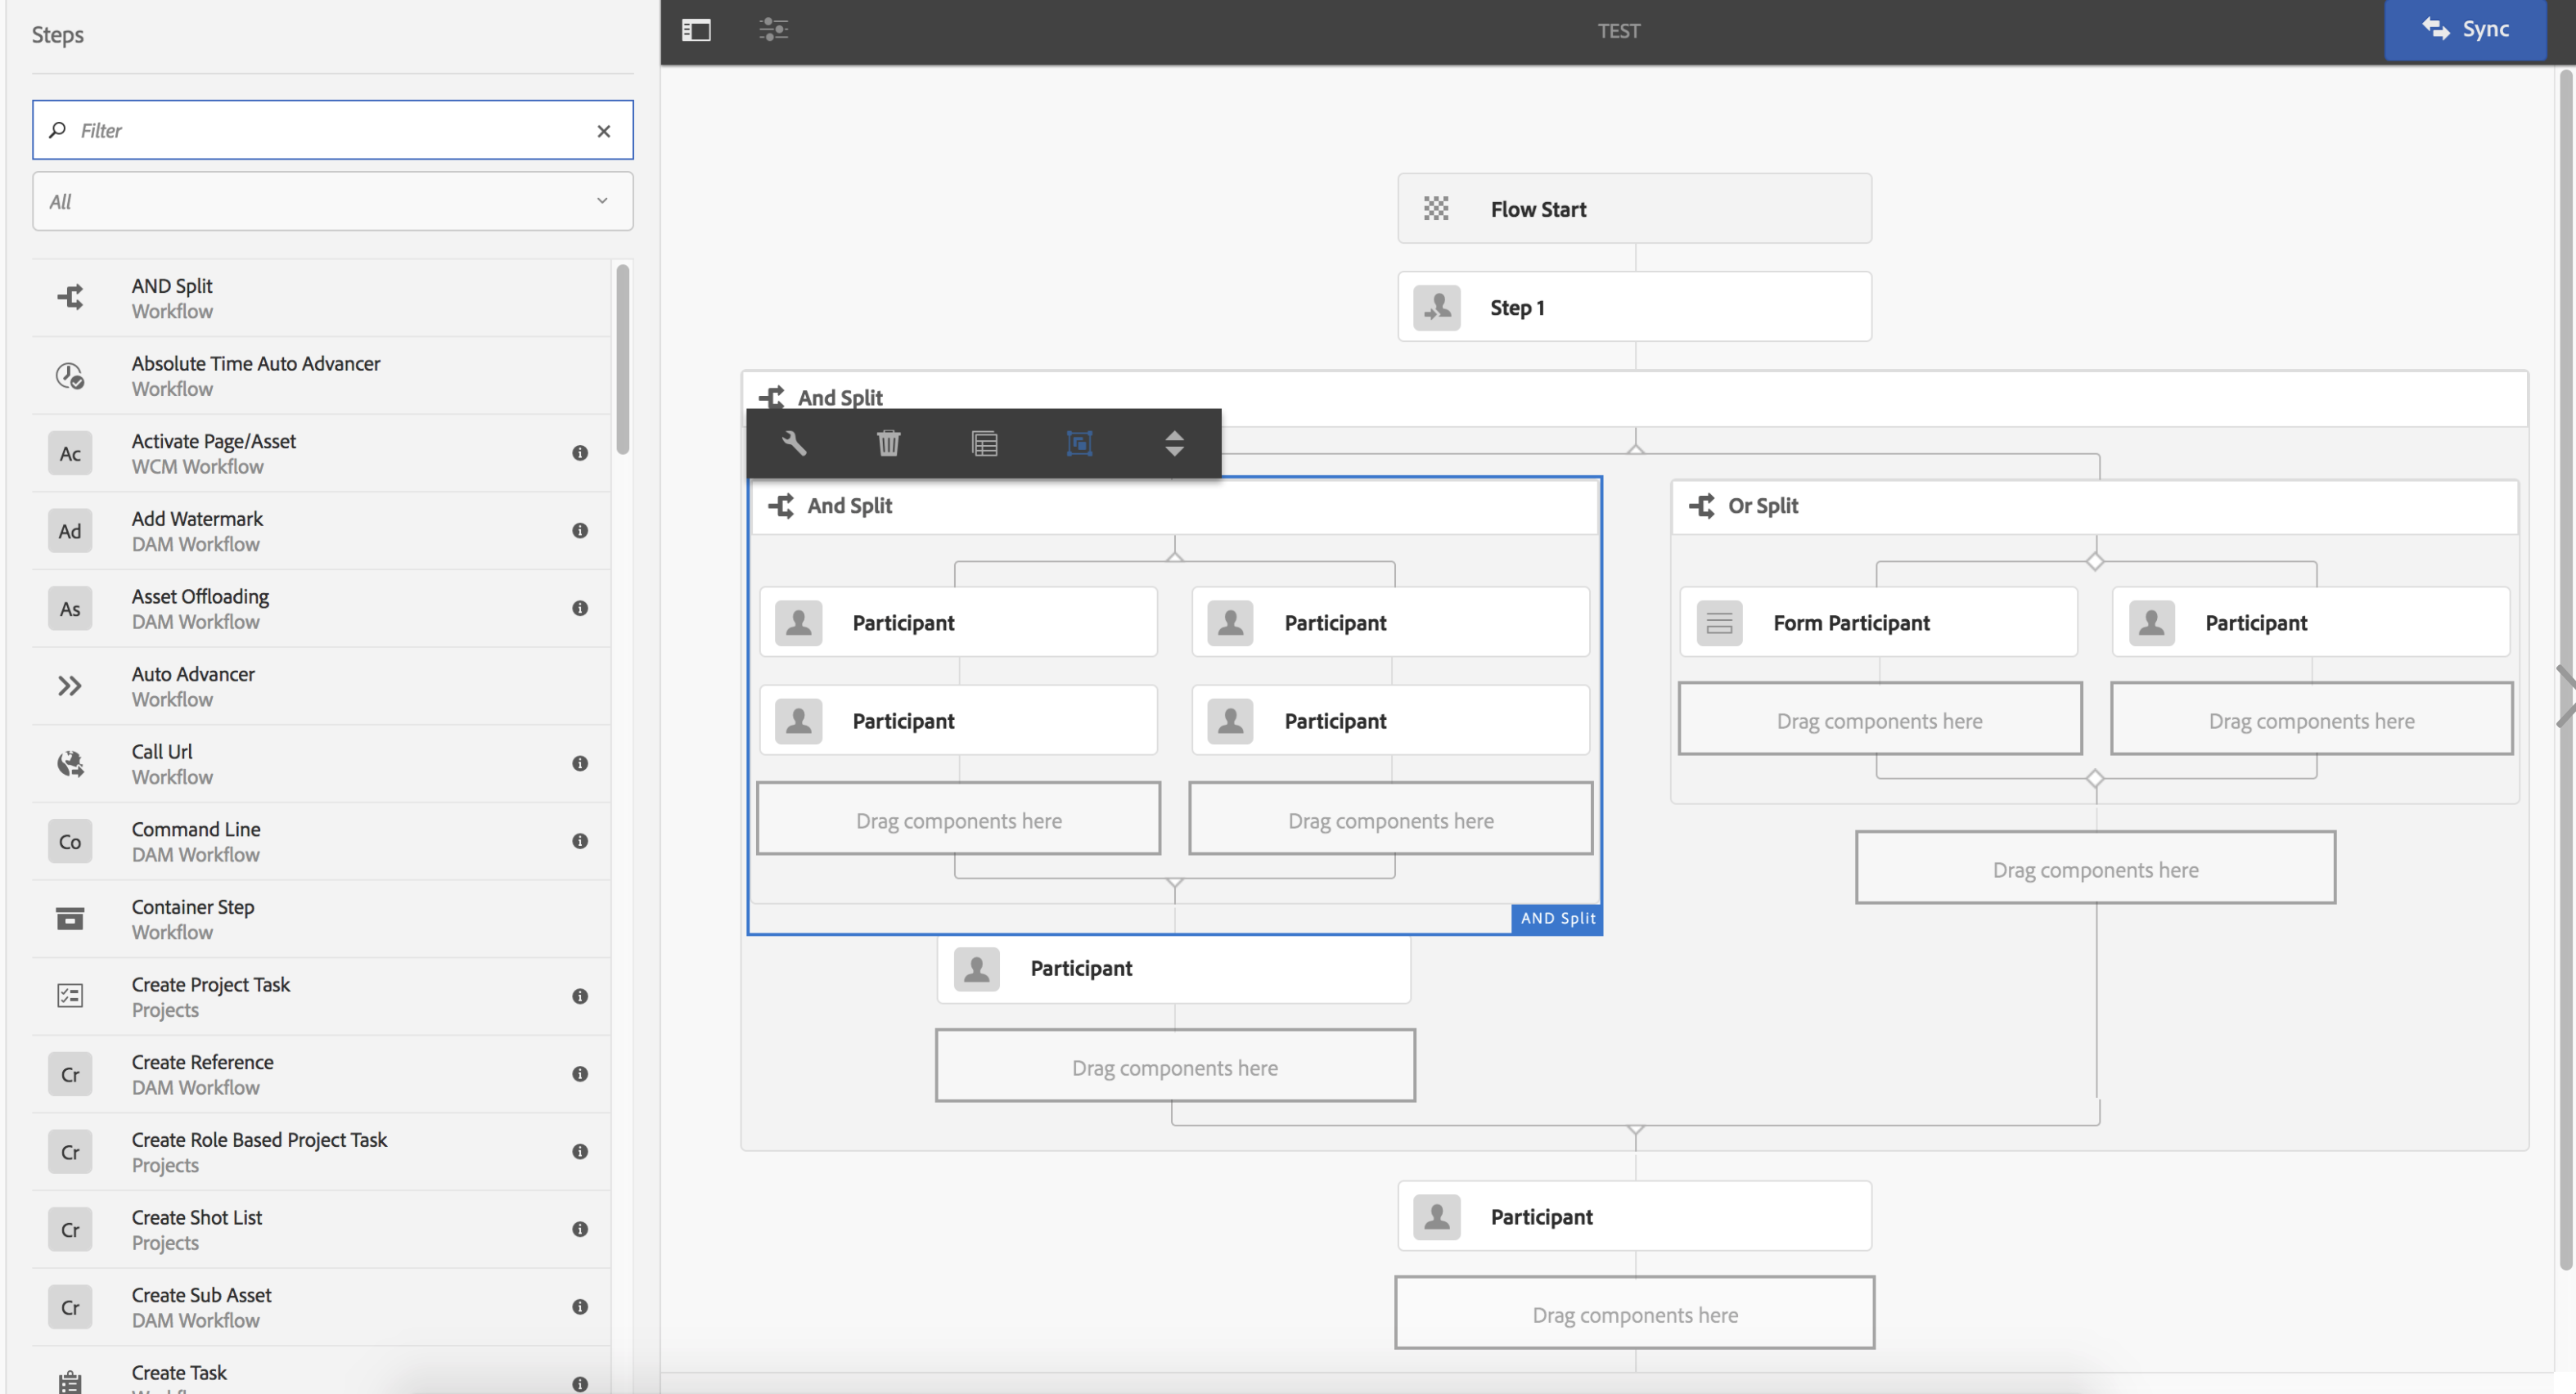 Touch UI Based Workflow Editor